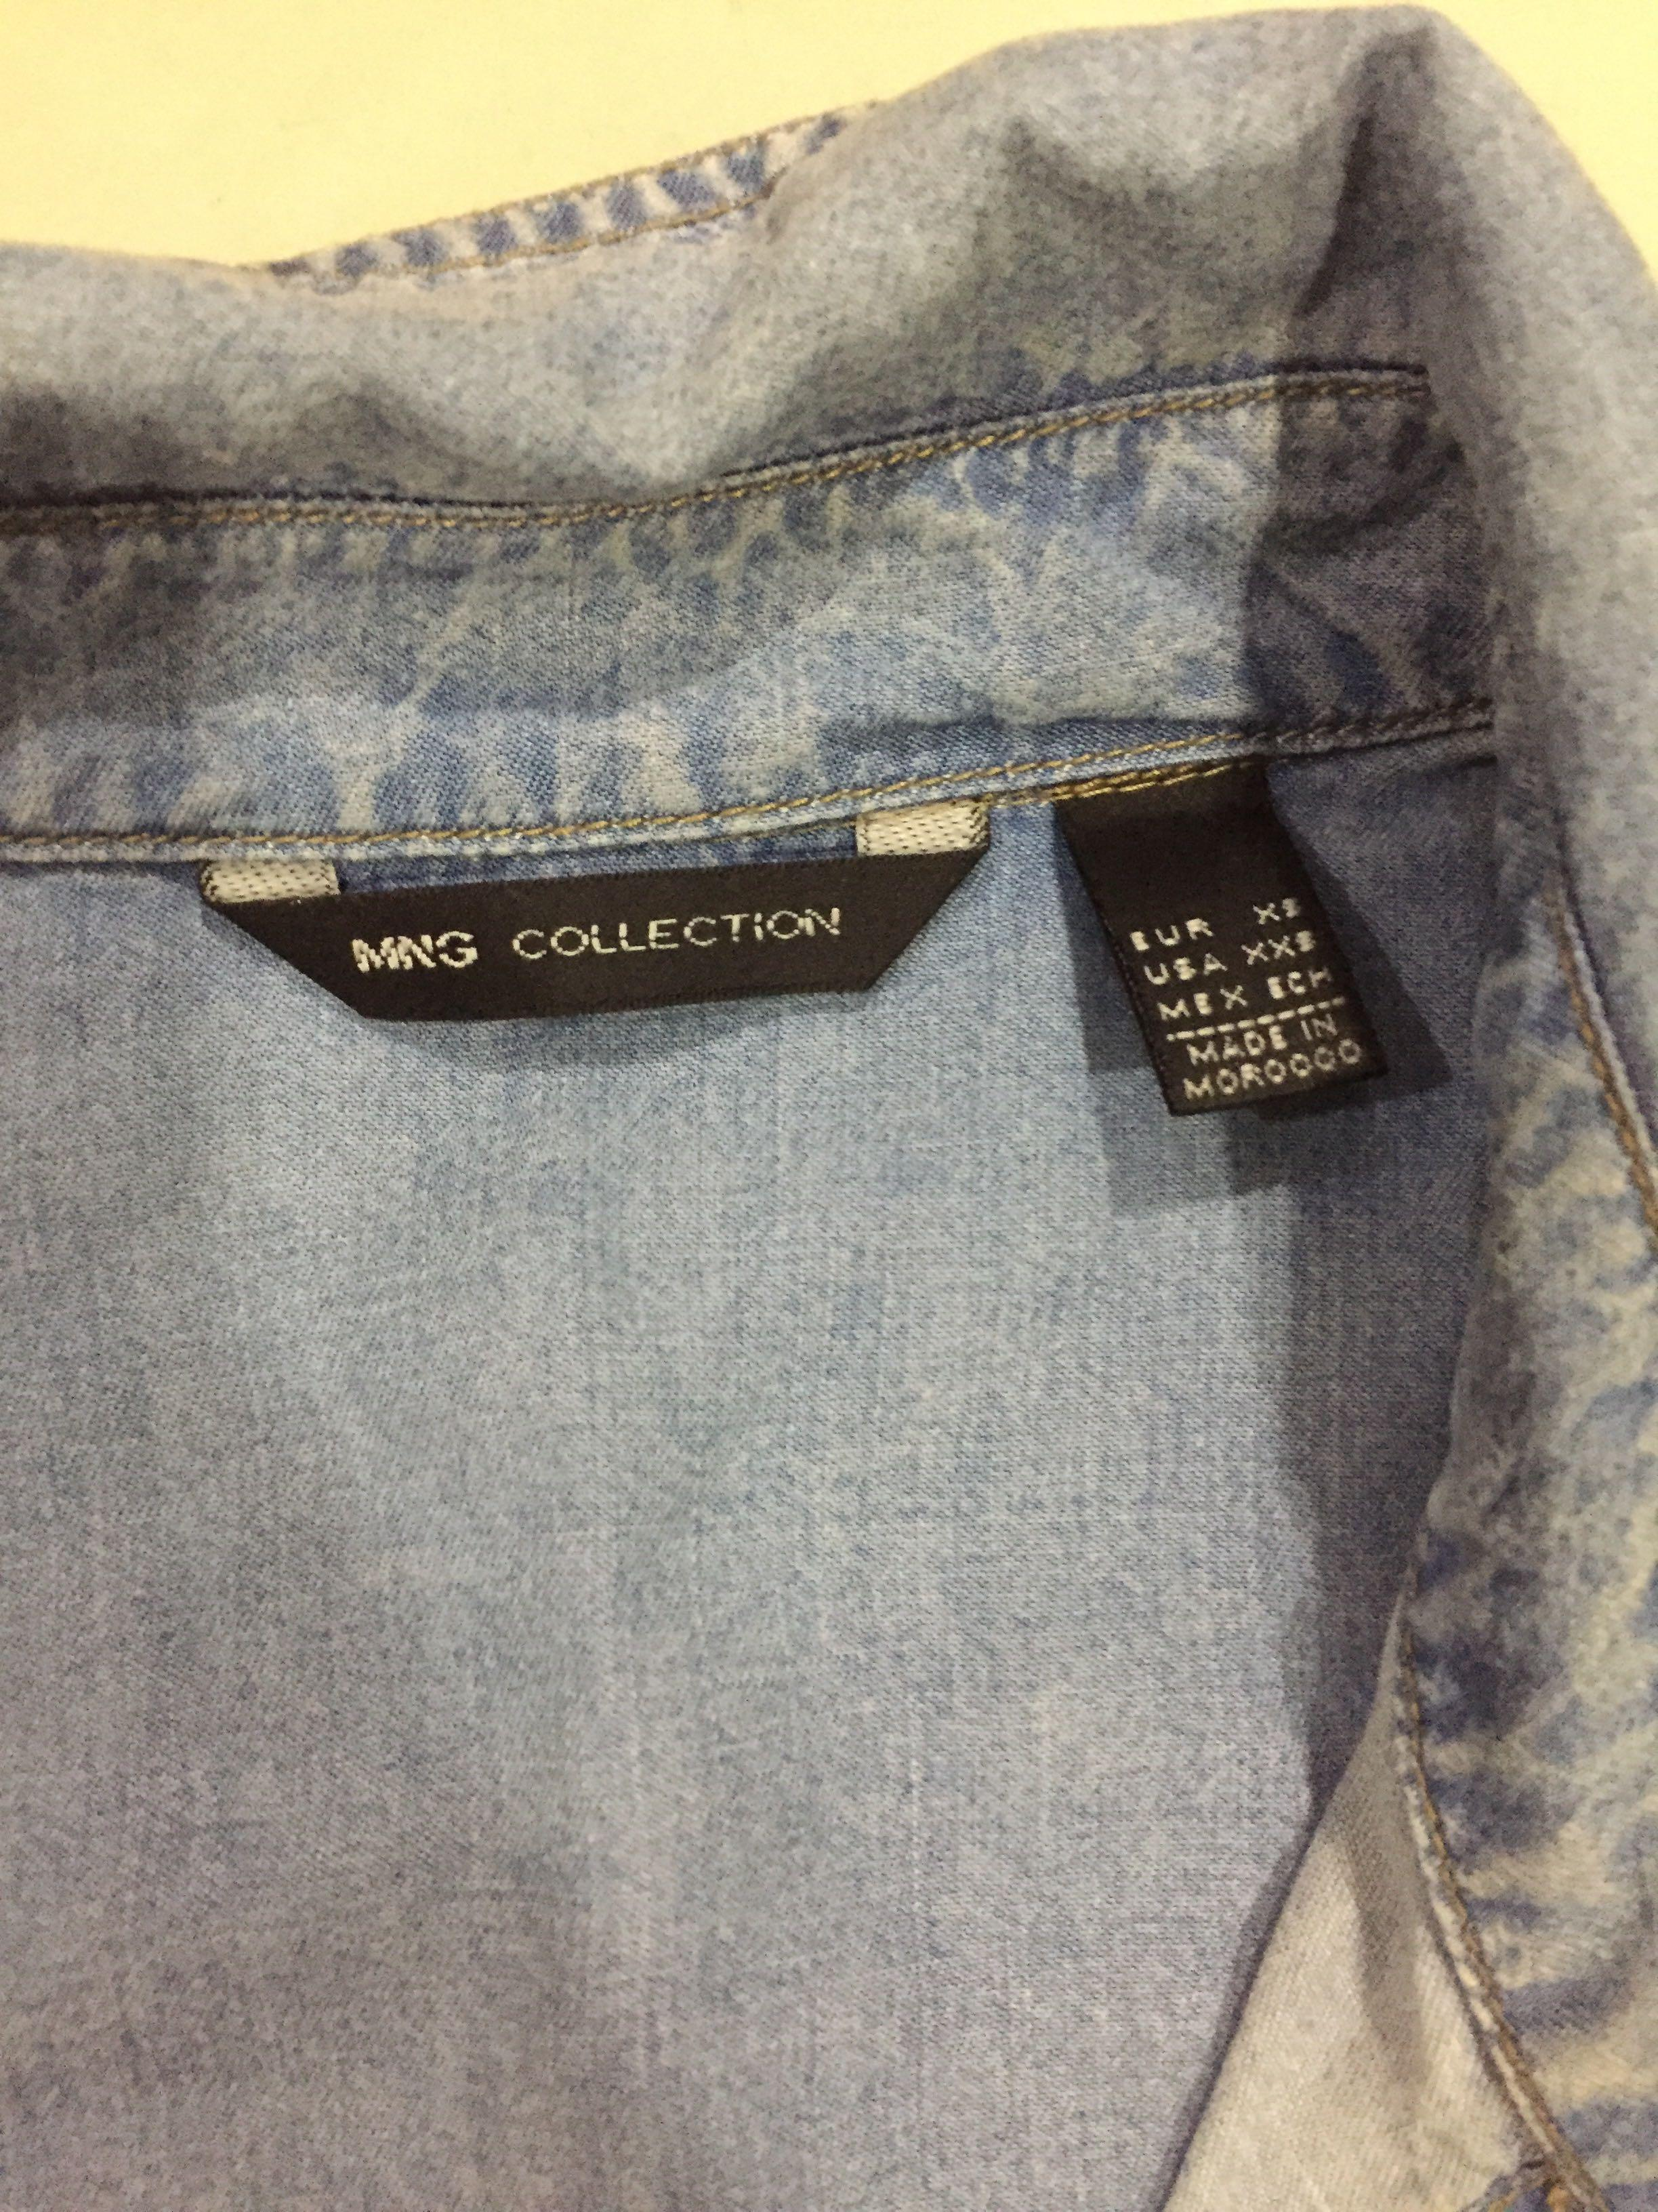 Mng jeans shirt